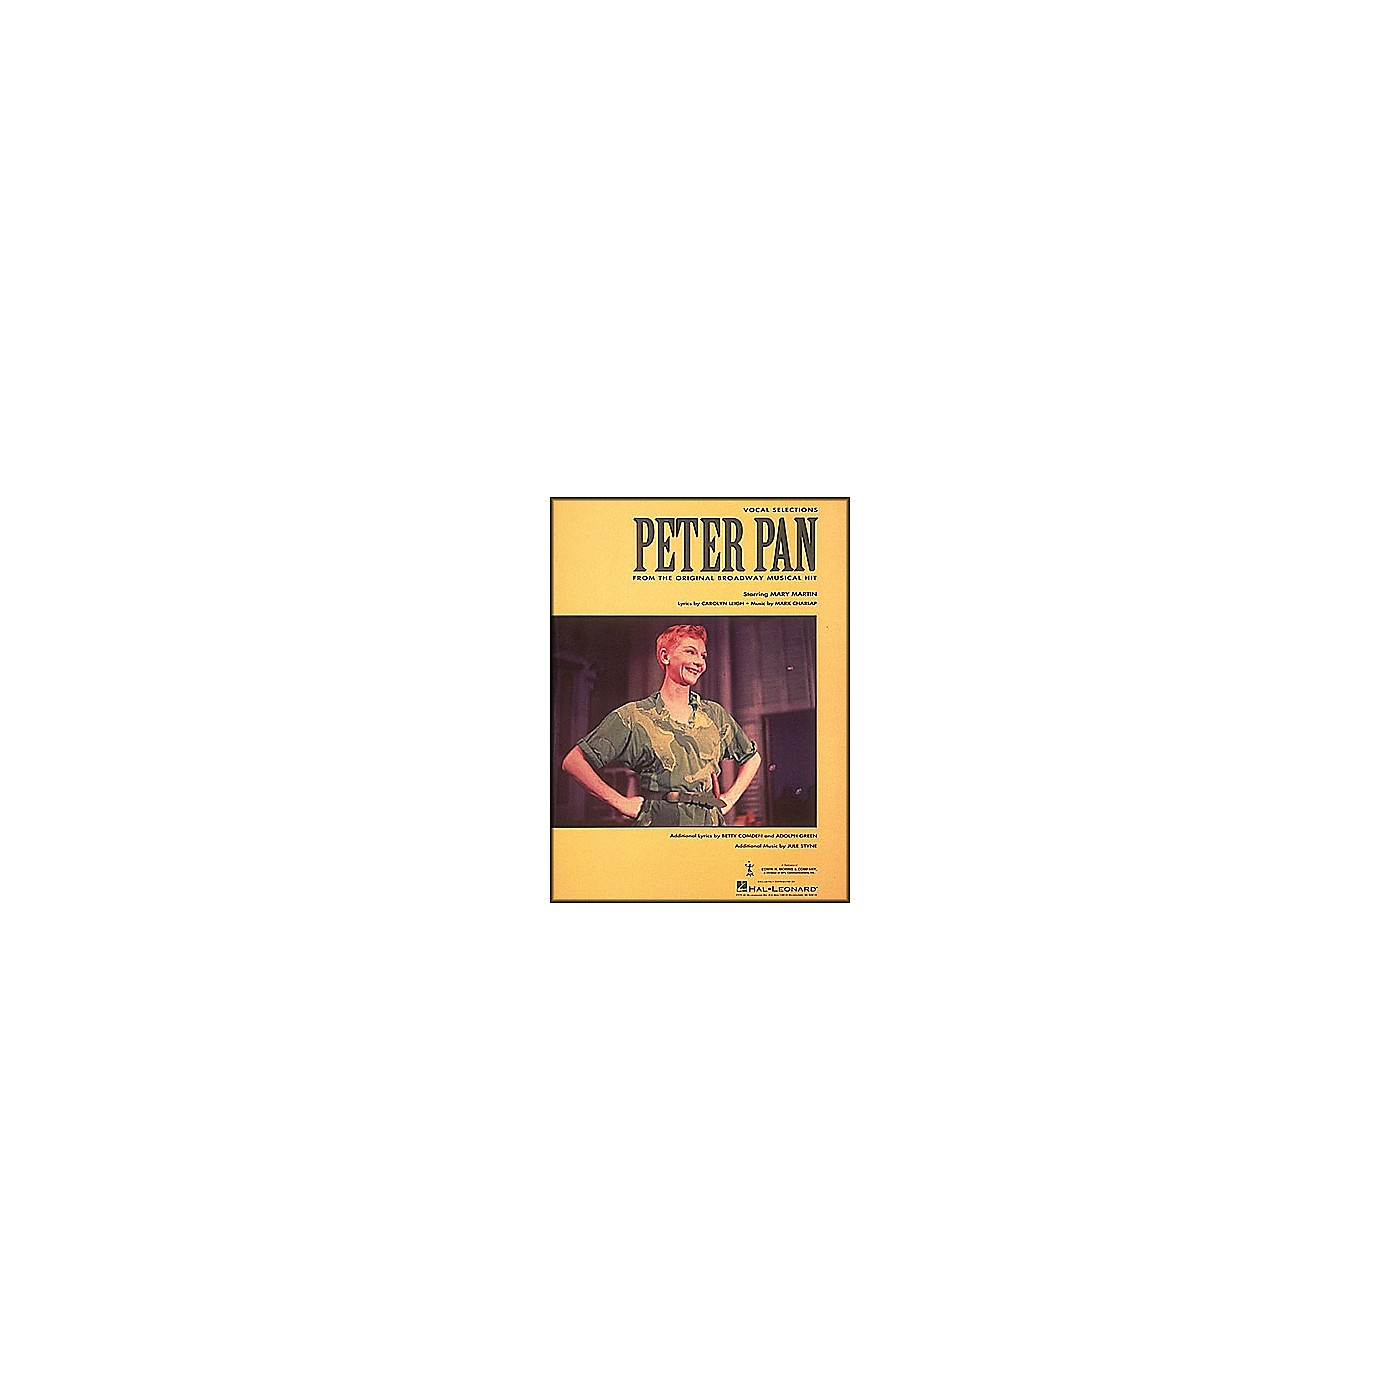 Hal Leonard Peter Pan Vocal Selections From The Original Broadway Musical Hit arranged for piano, vocal, and guitar (P/V/G) thumbnail